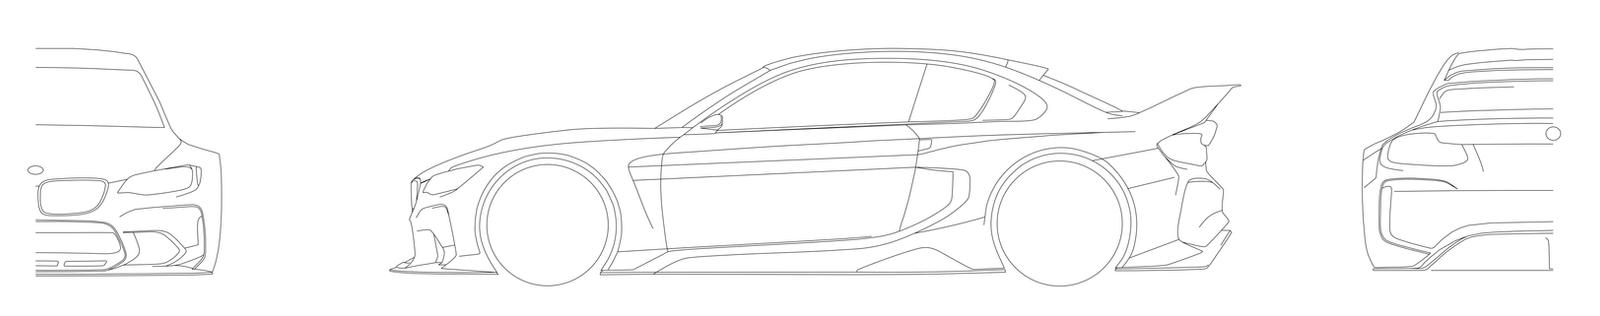 Bmw Gt Vision Blueprints by cipriany on DeviantArt